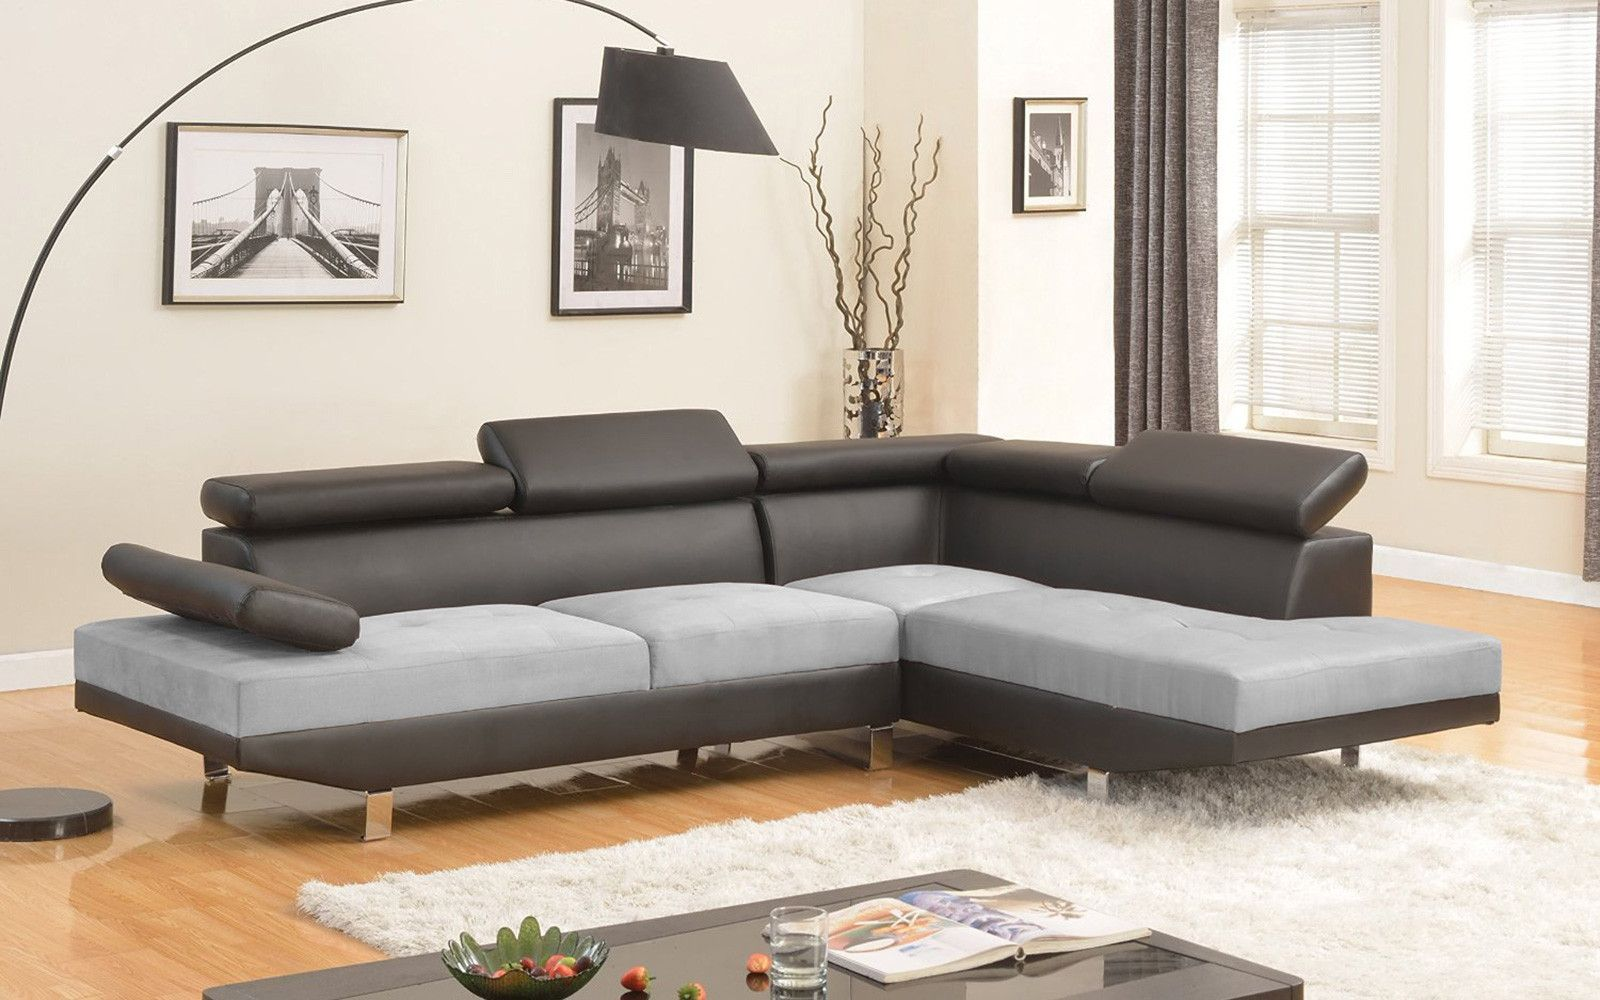 2 Piece Modern Microfiber and Bonded Leather 2 Tone Sectional Sofa ...